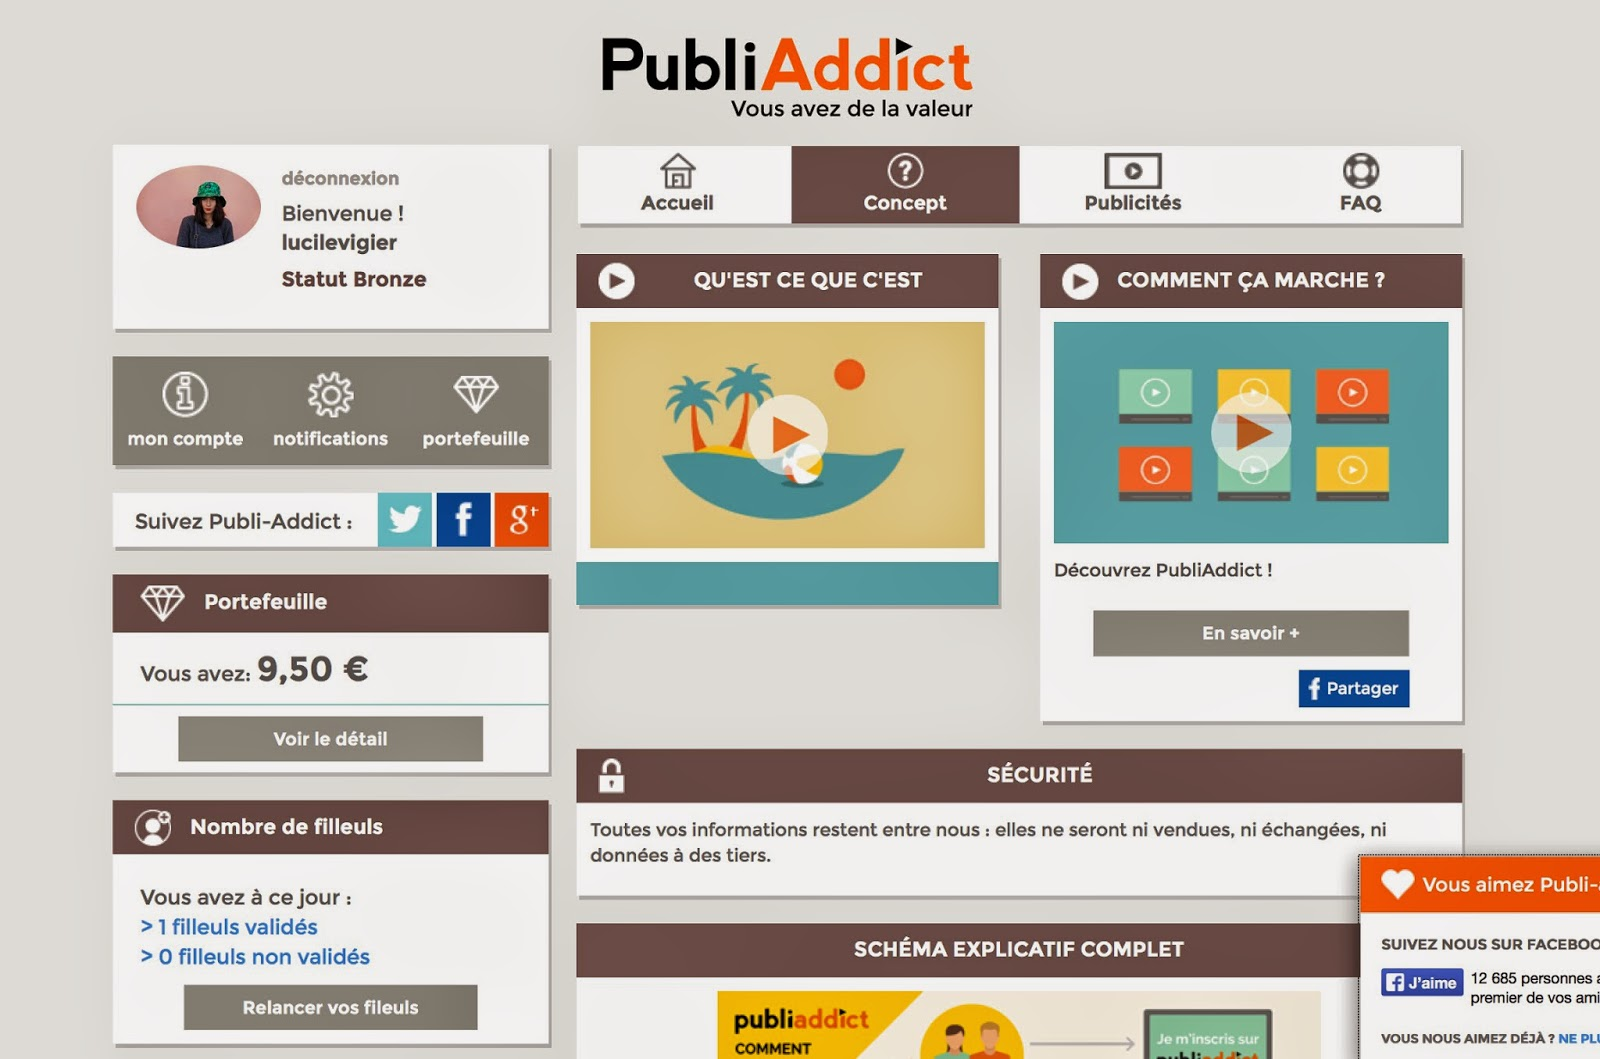 https://www.publi-addict.com/